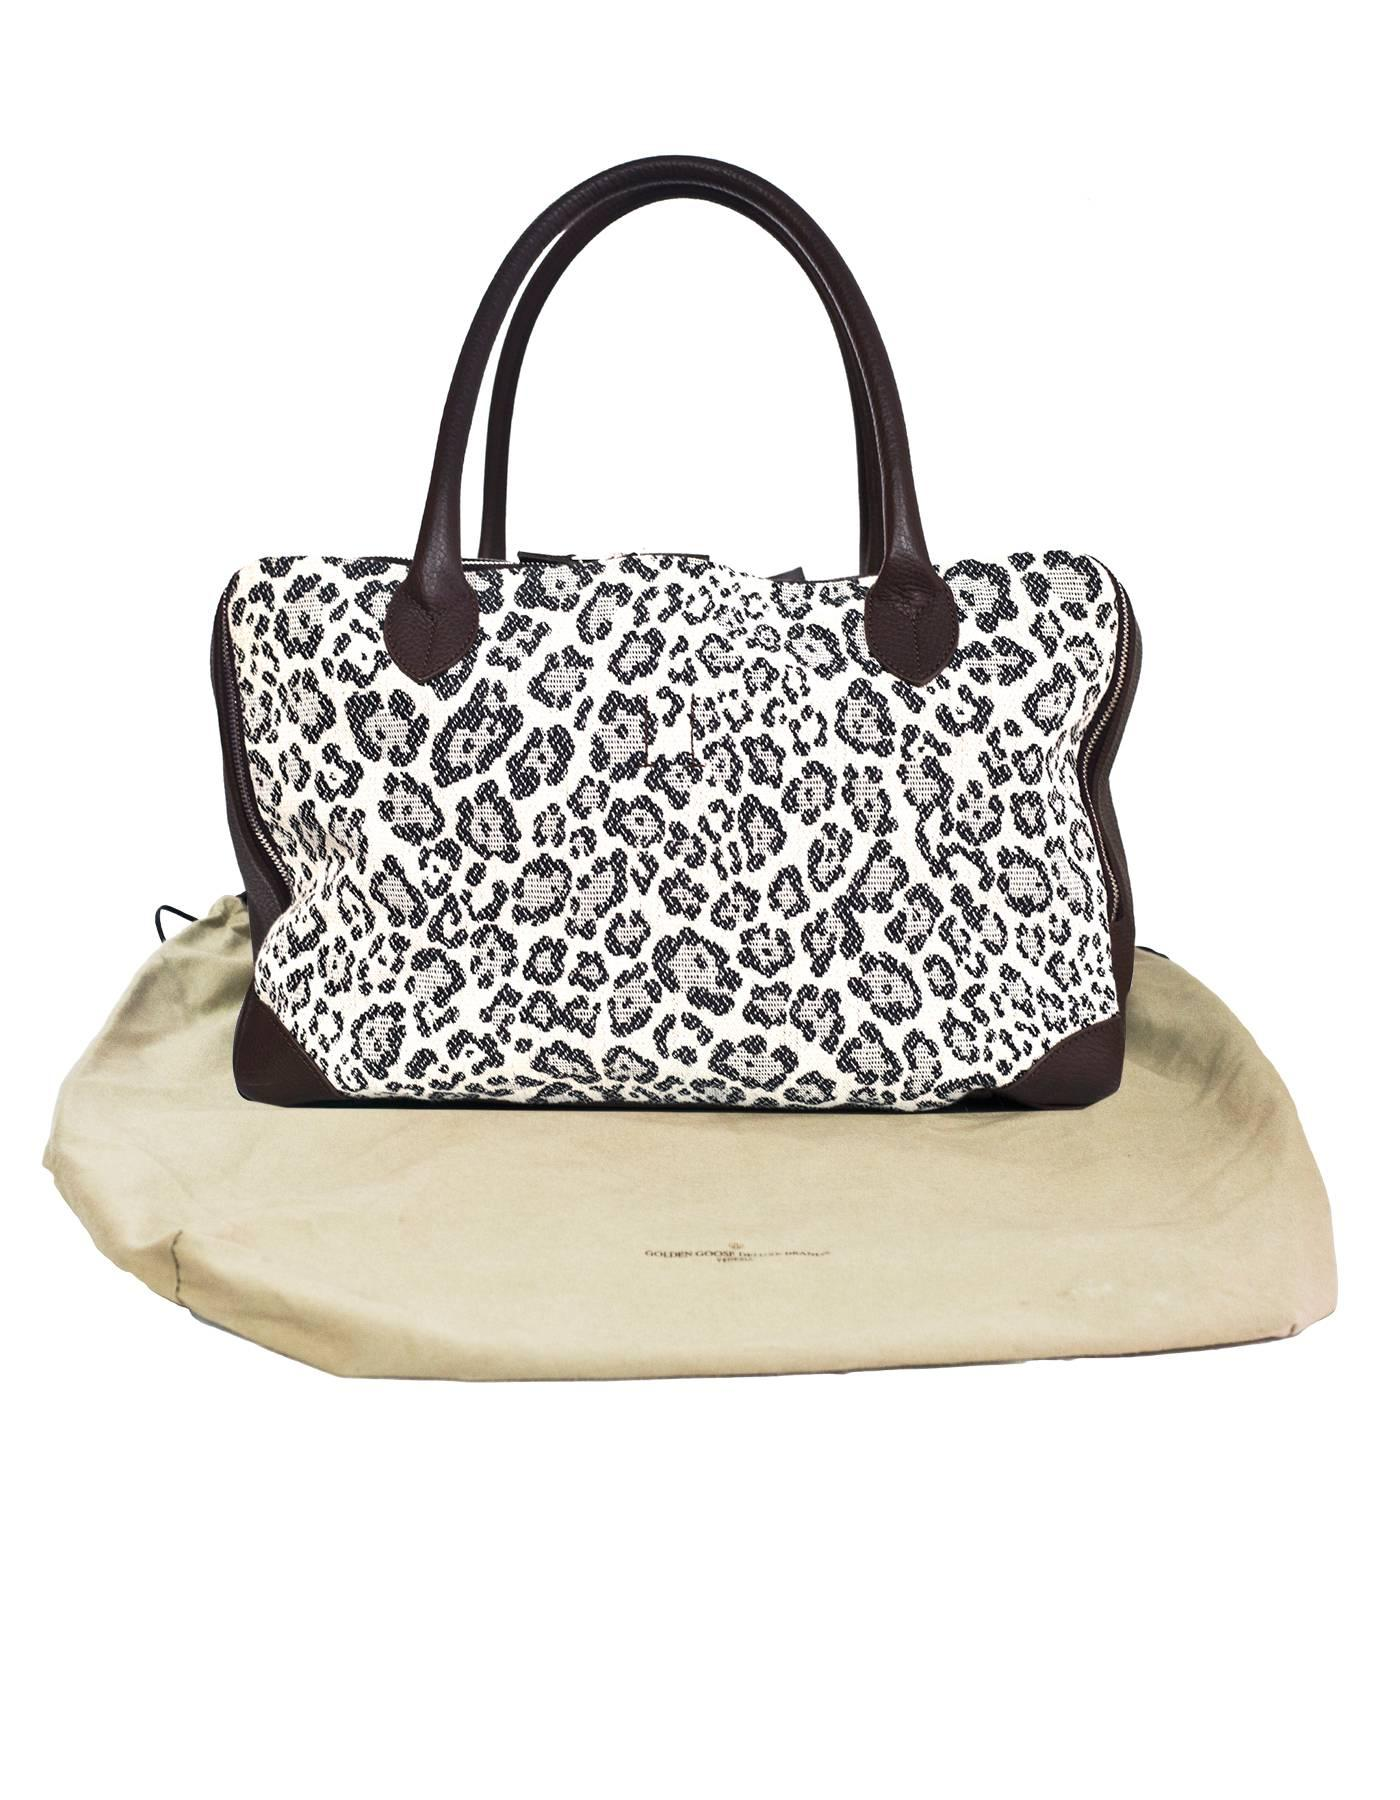 1stdibs Golden Goose Canvas & Leather Leopard Medium Equipage Bag With Db kYtV2Nh